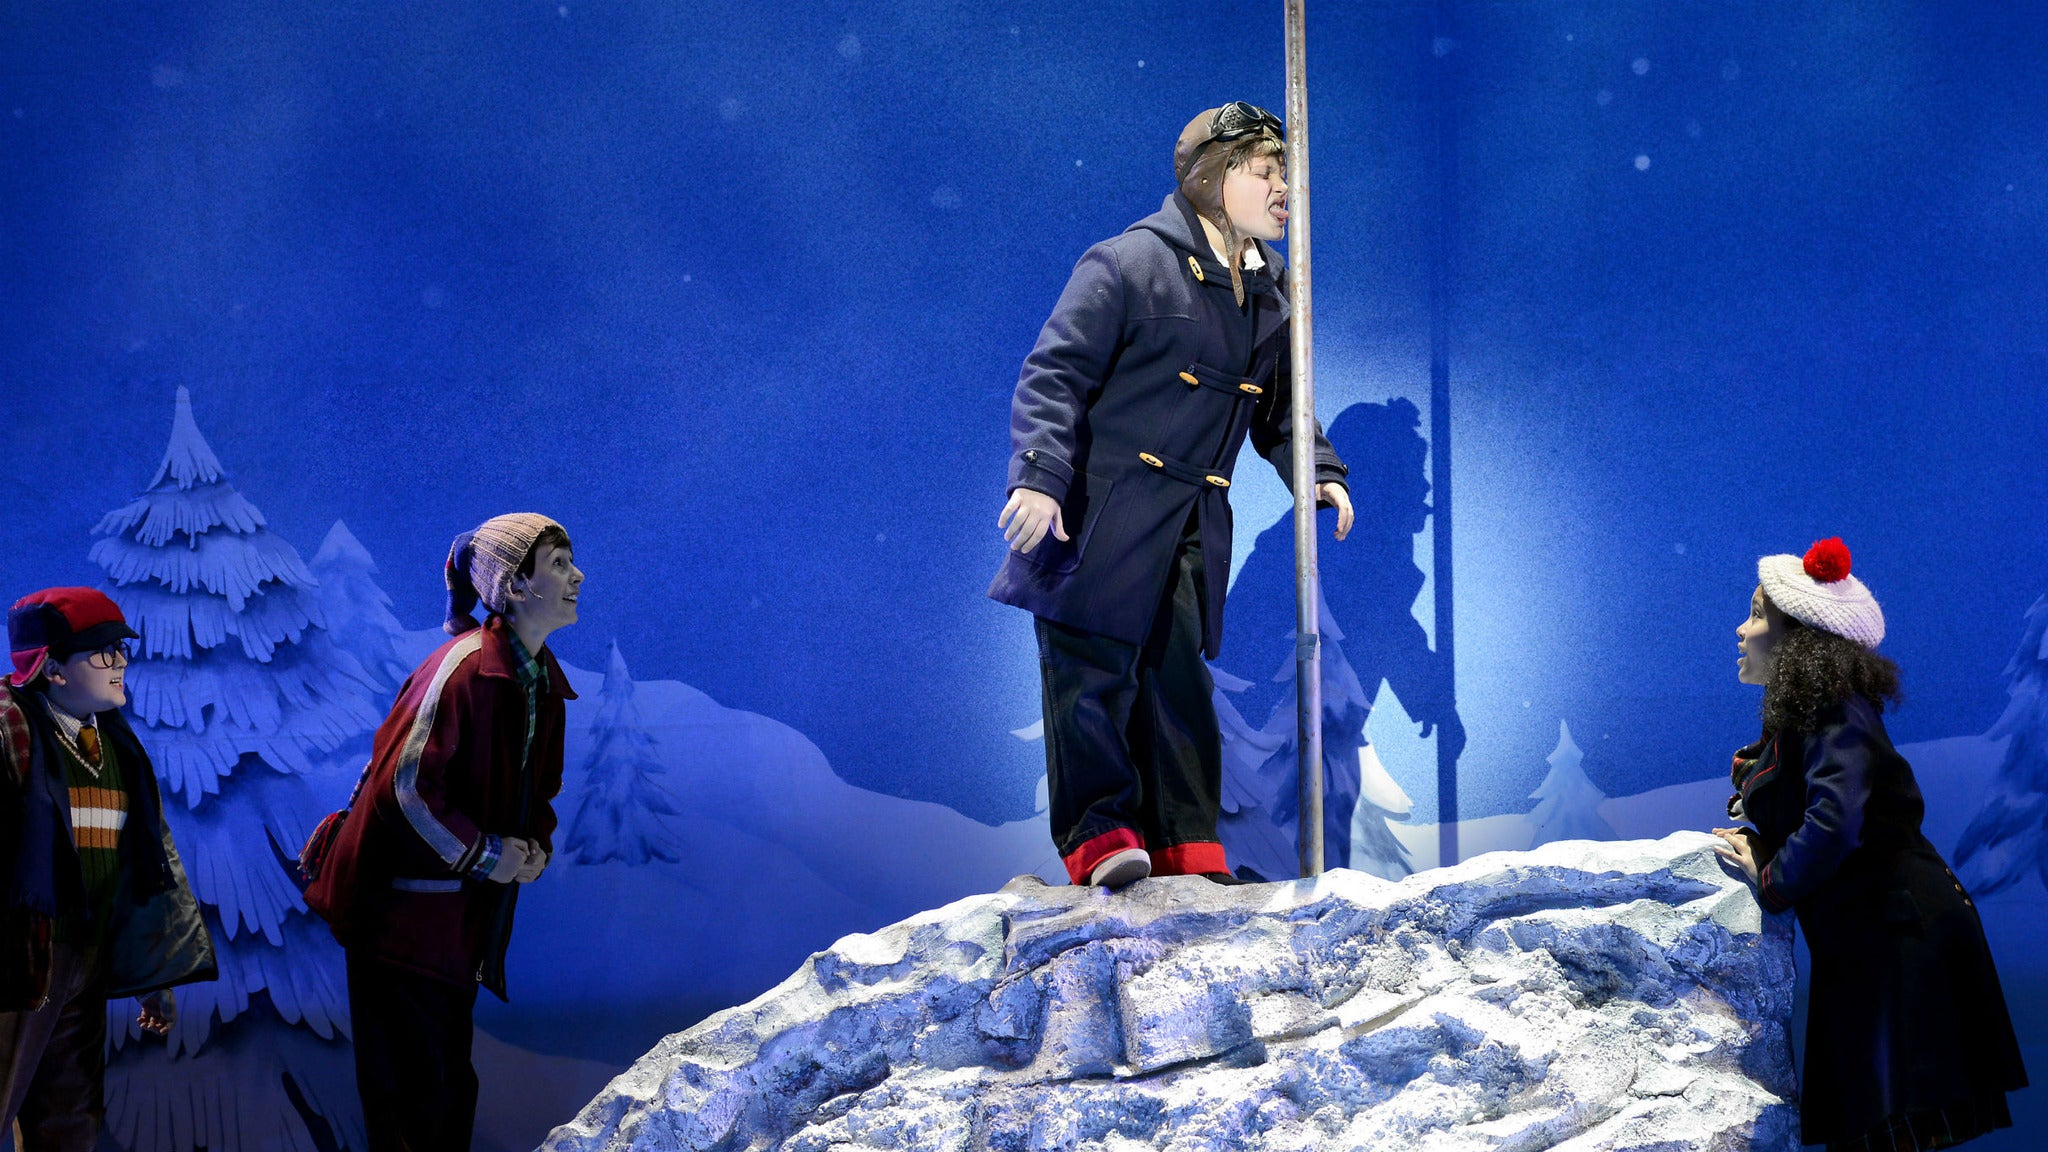 A Christmas Story: The Musical (Touring) at Adler Theatre